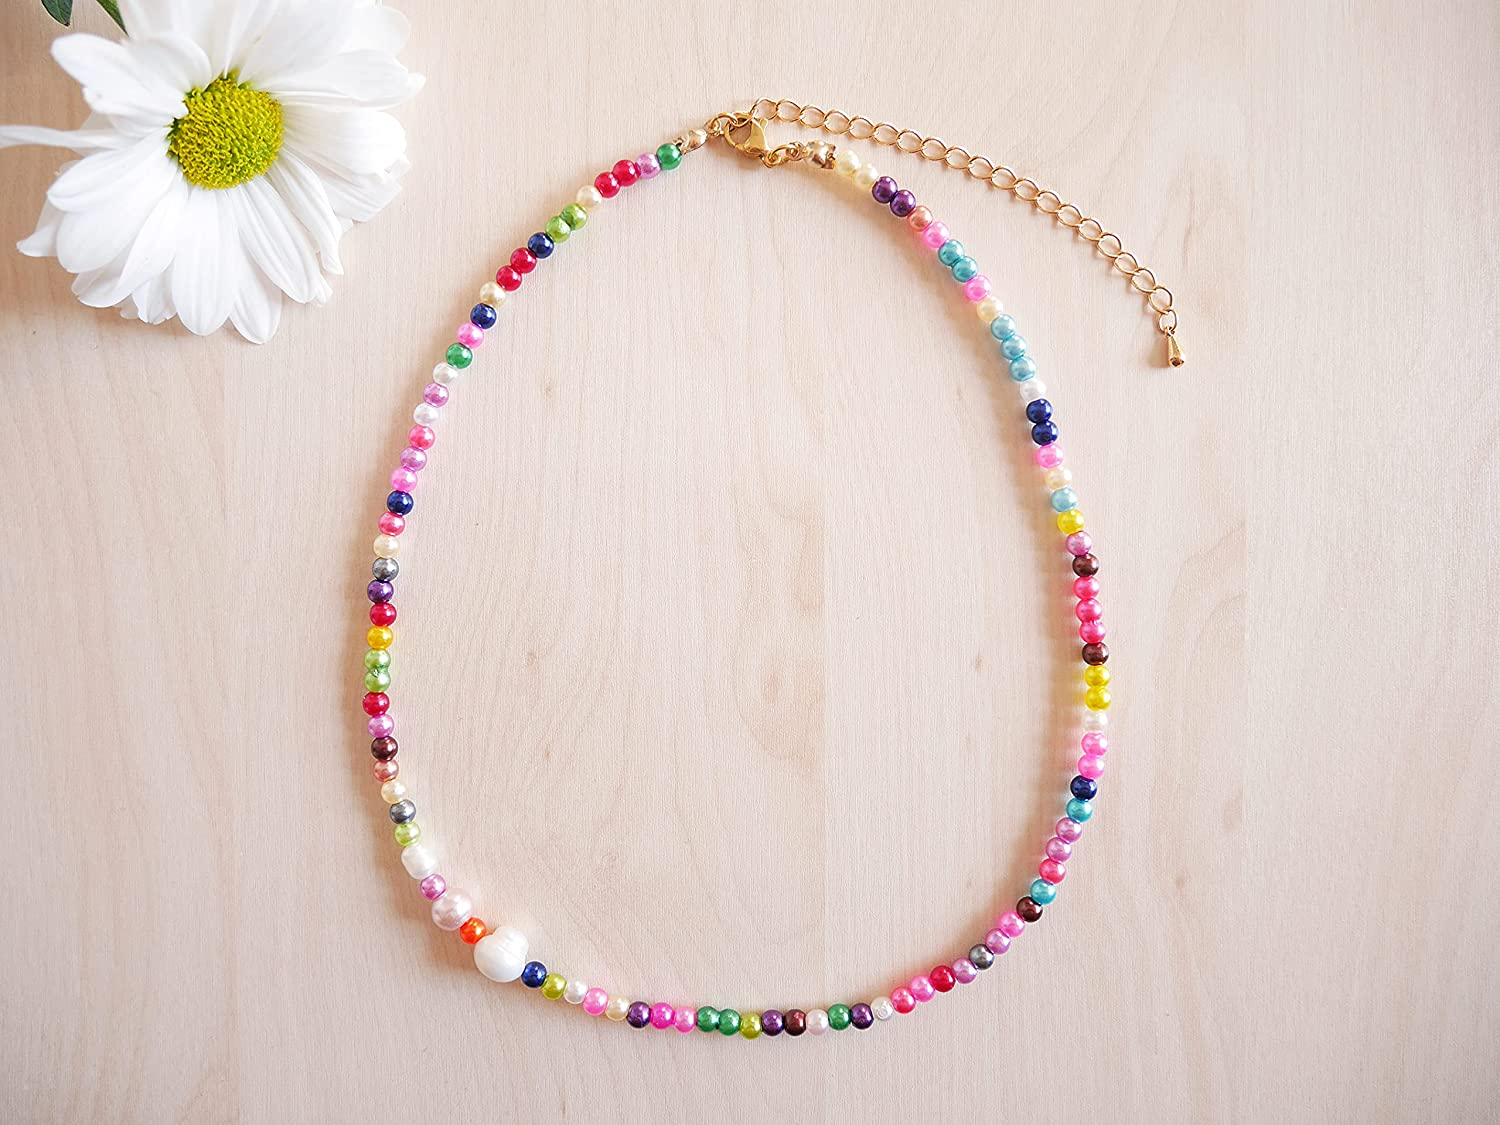 Free Shipping Cheap Bargain Gift Rainbow OFFer beaded necklace - light-weight summer colorful